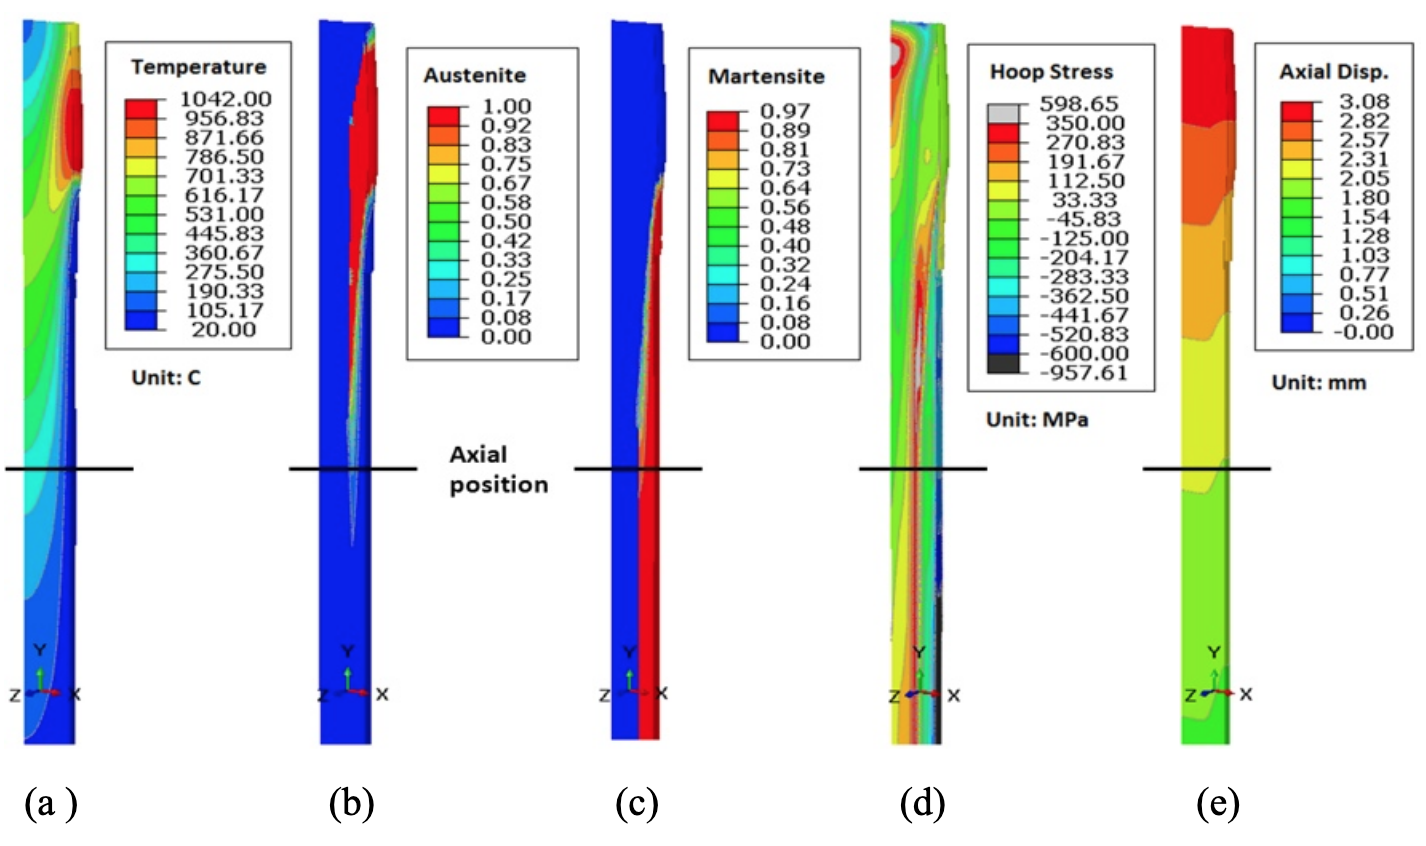 Fluxtrol - Modeling Stress and Distortion of Full-Float Truck Axle During Induction Hardening Process - Figure 5 (a) Temperature, (b) austenite phase, (c) martensite, (d) hoop stress, and (e) axial displacement distributions at the end of heating process (130.15 second).